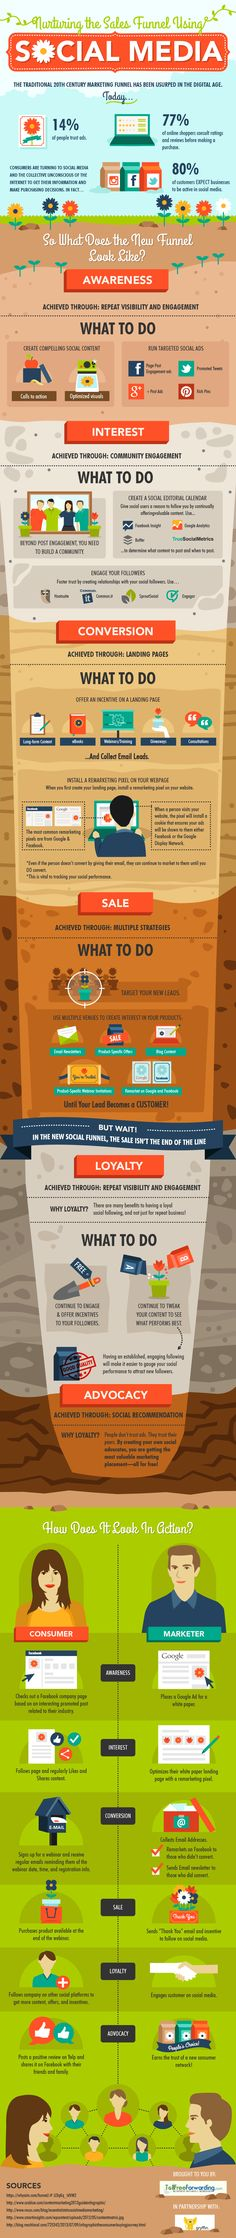 Nurturing the Sales Funnel Using Social Media #Marketing (Infographic) #sales #socialmedia